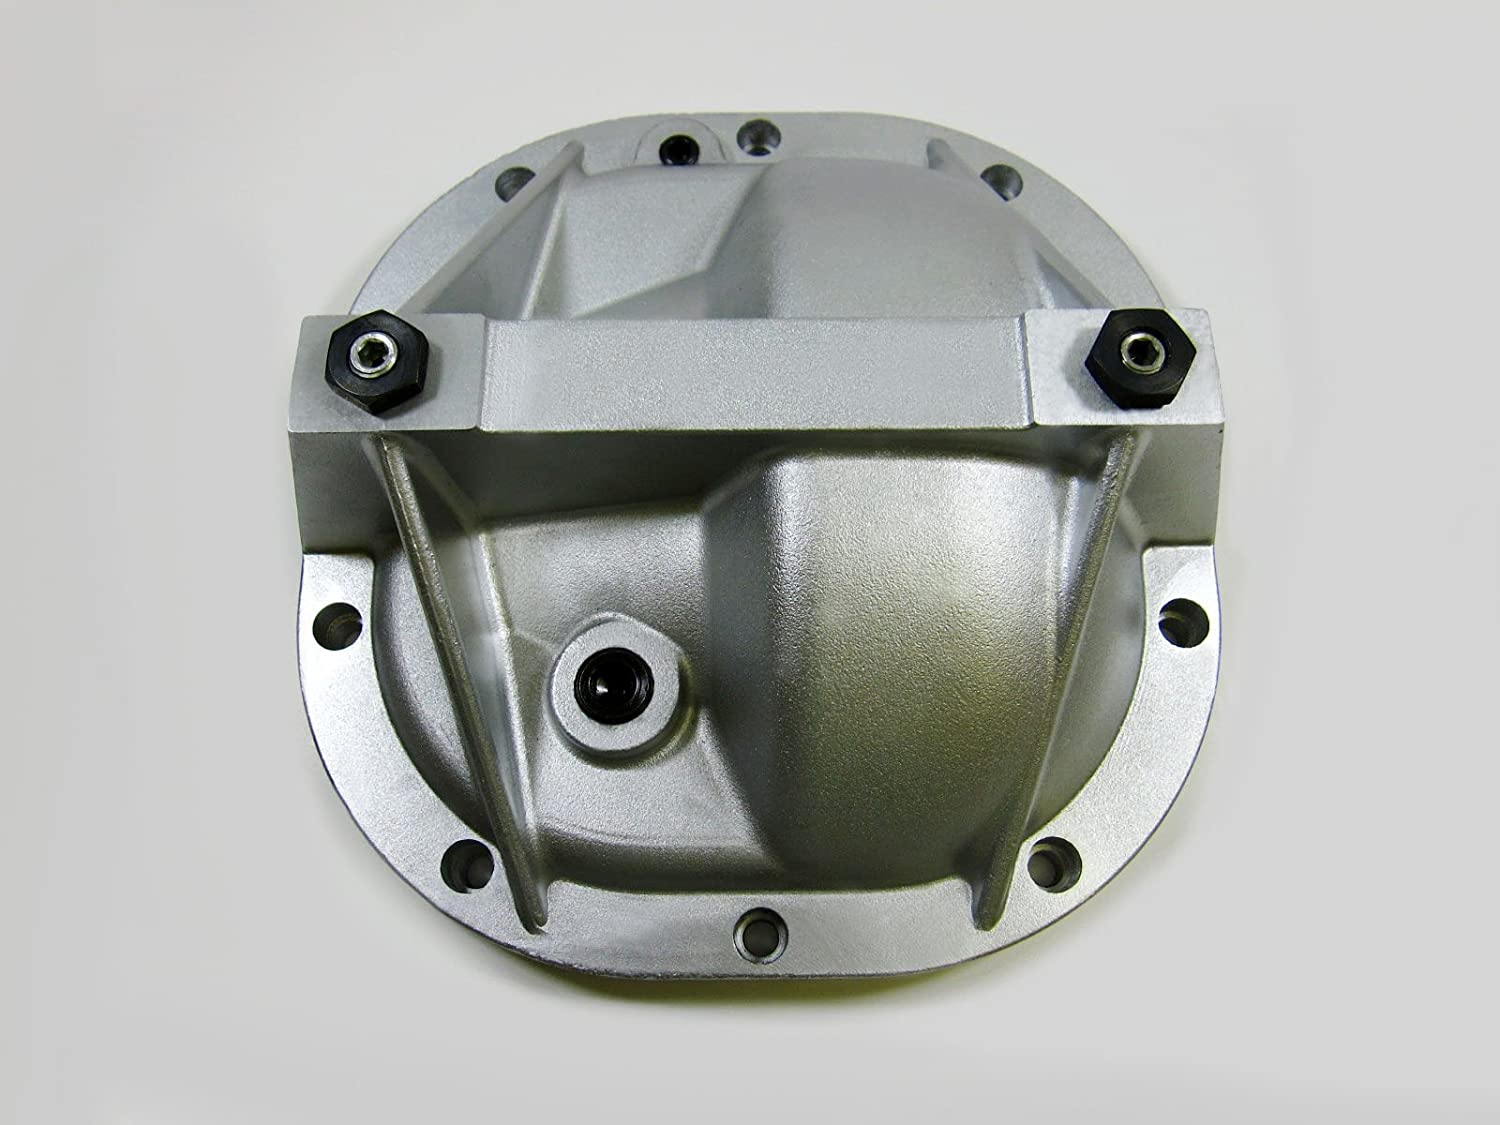 Amazon com 8 8 ford mustang aluminum differential cover rear end girdle system premium quality silver automotive